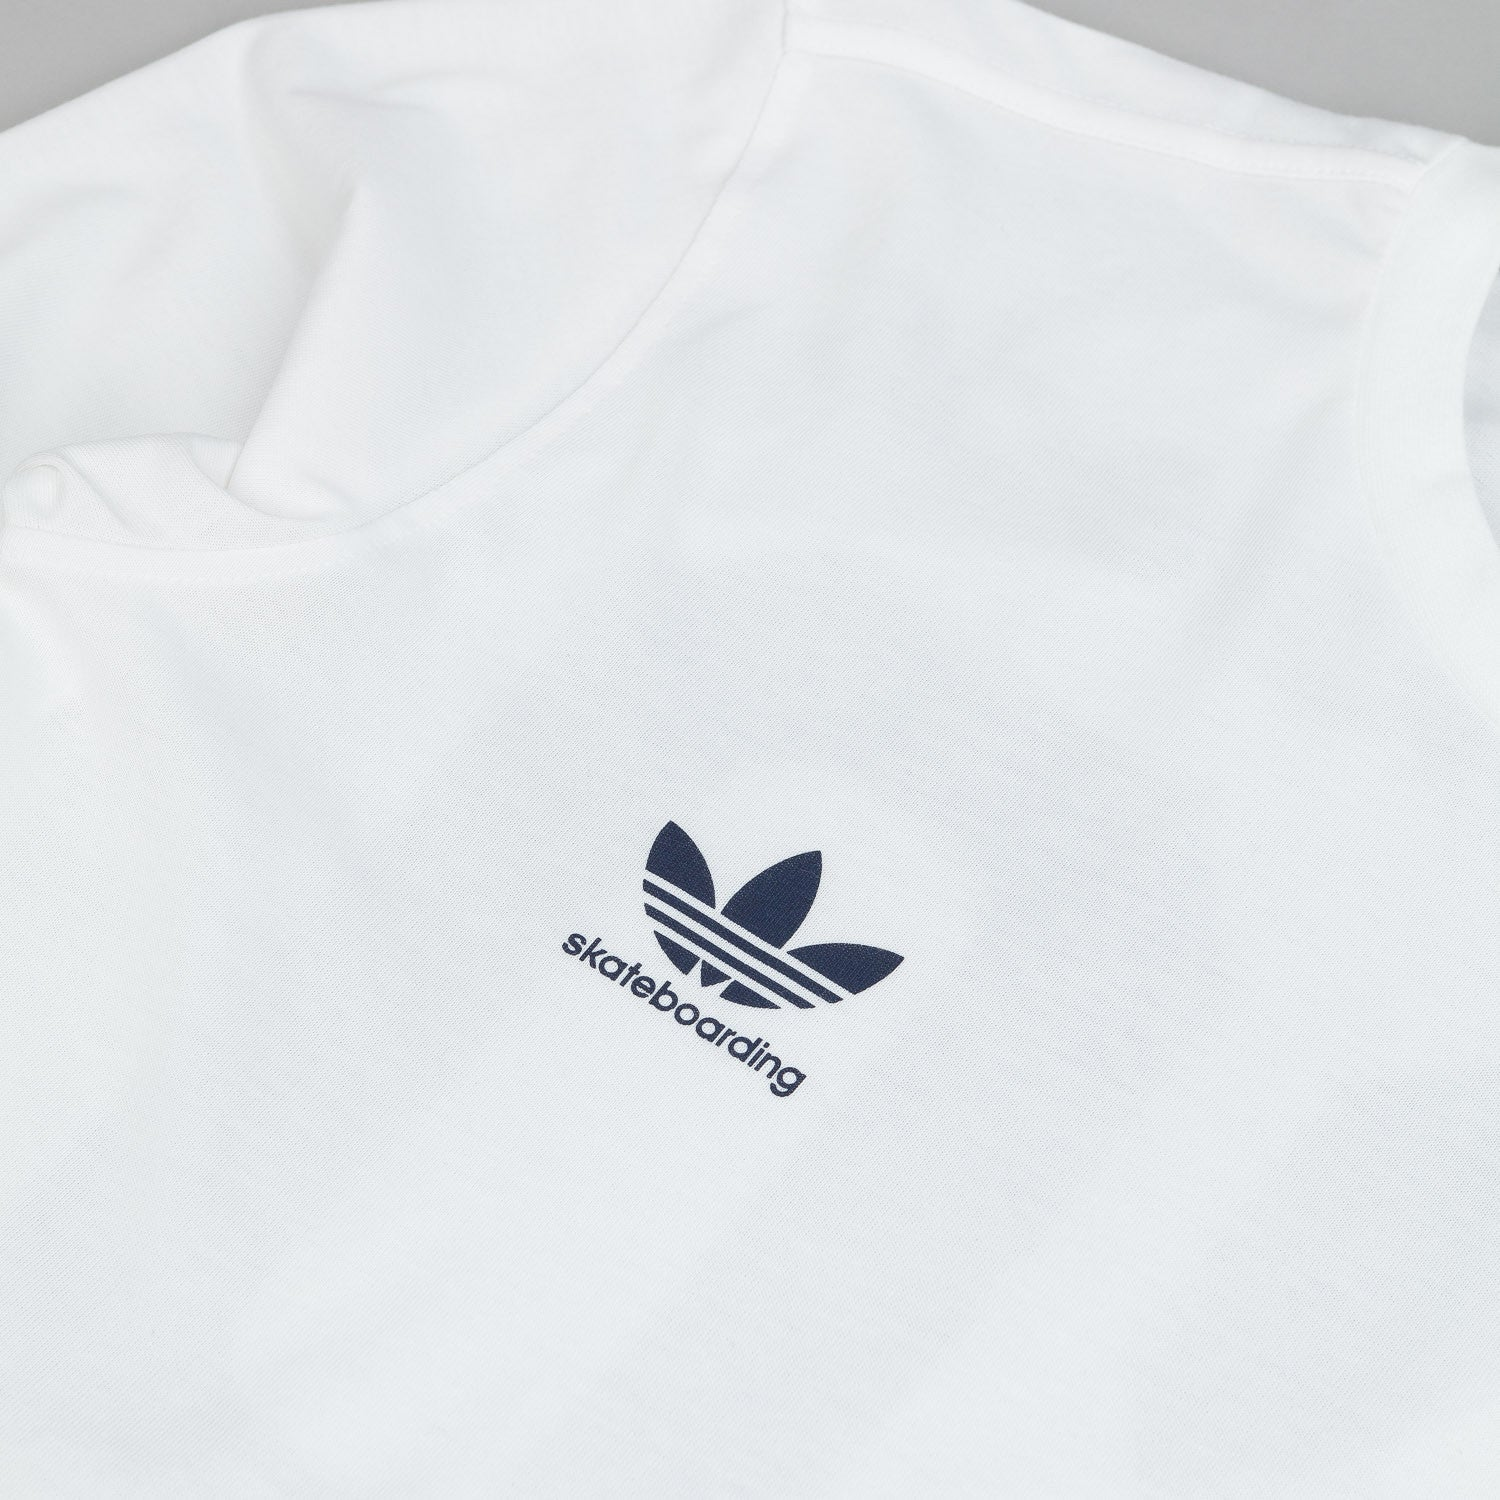 Adidas X The Hundreds Long Sleeve T-Shirt - White